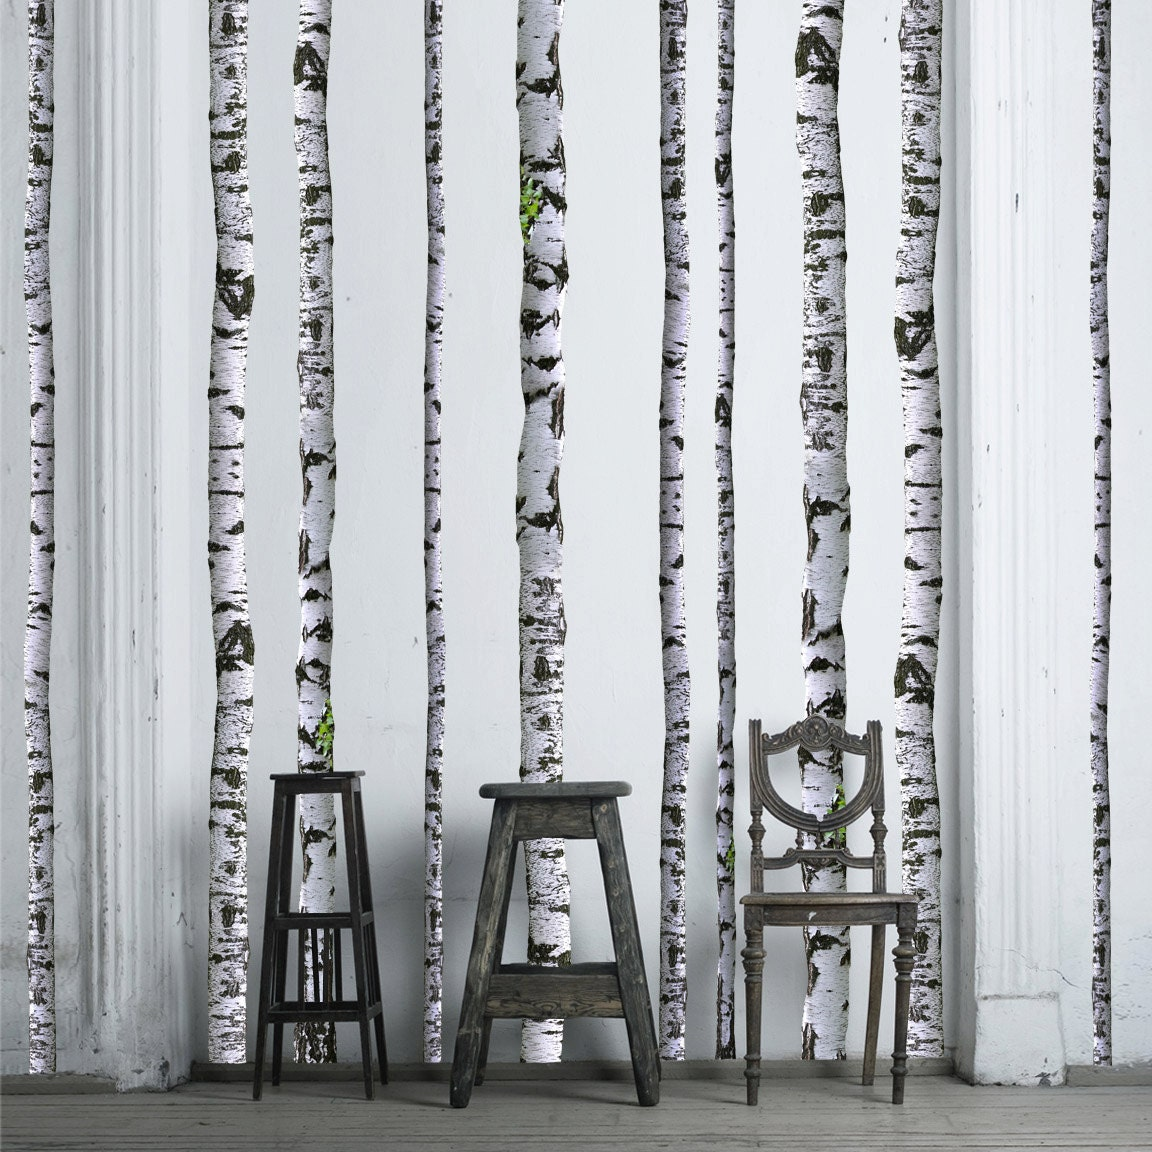 Birch tree wall decals 9 ft tall quantity of 5 for Birch tree wall mural